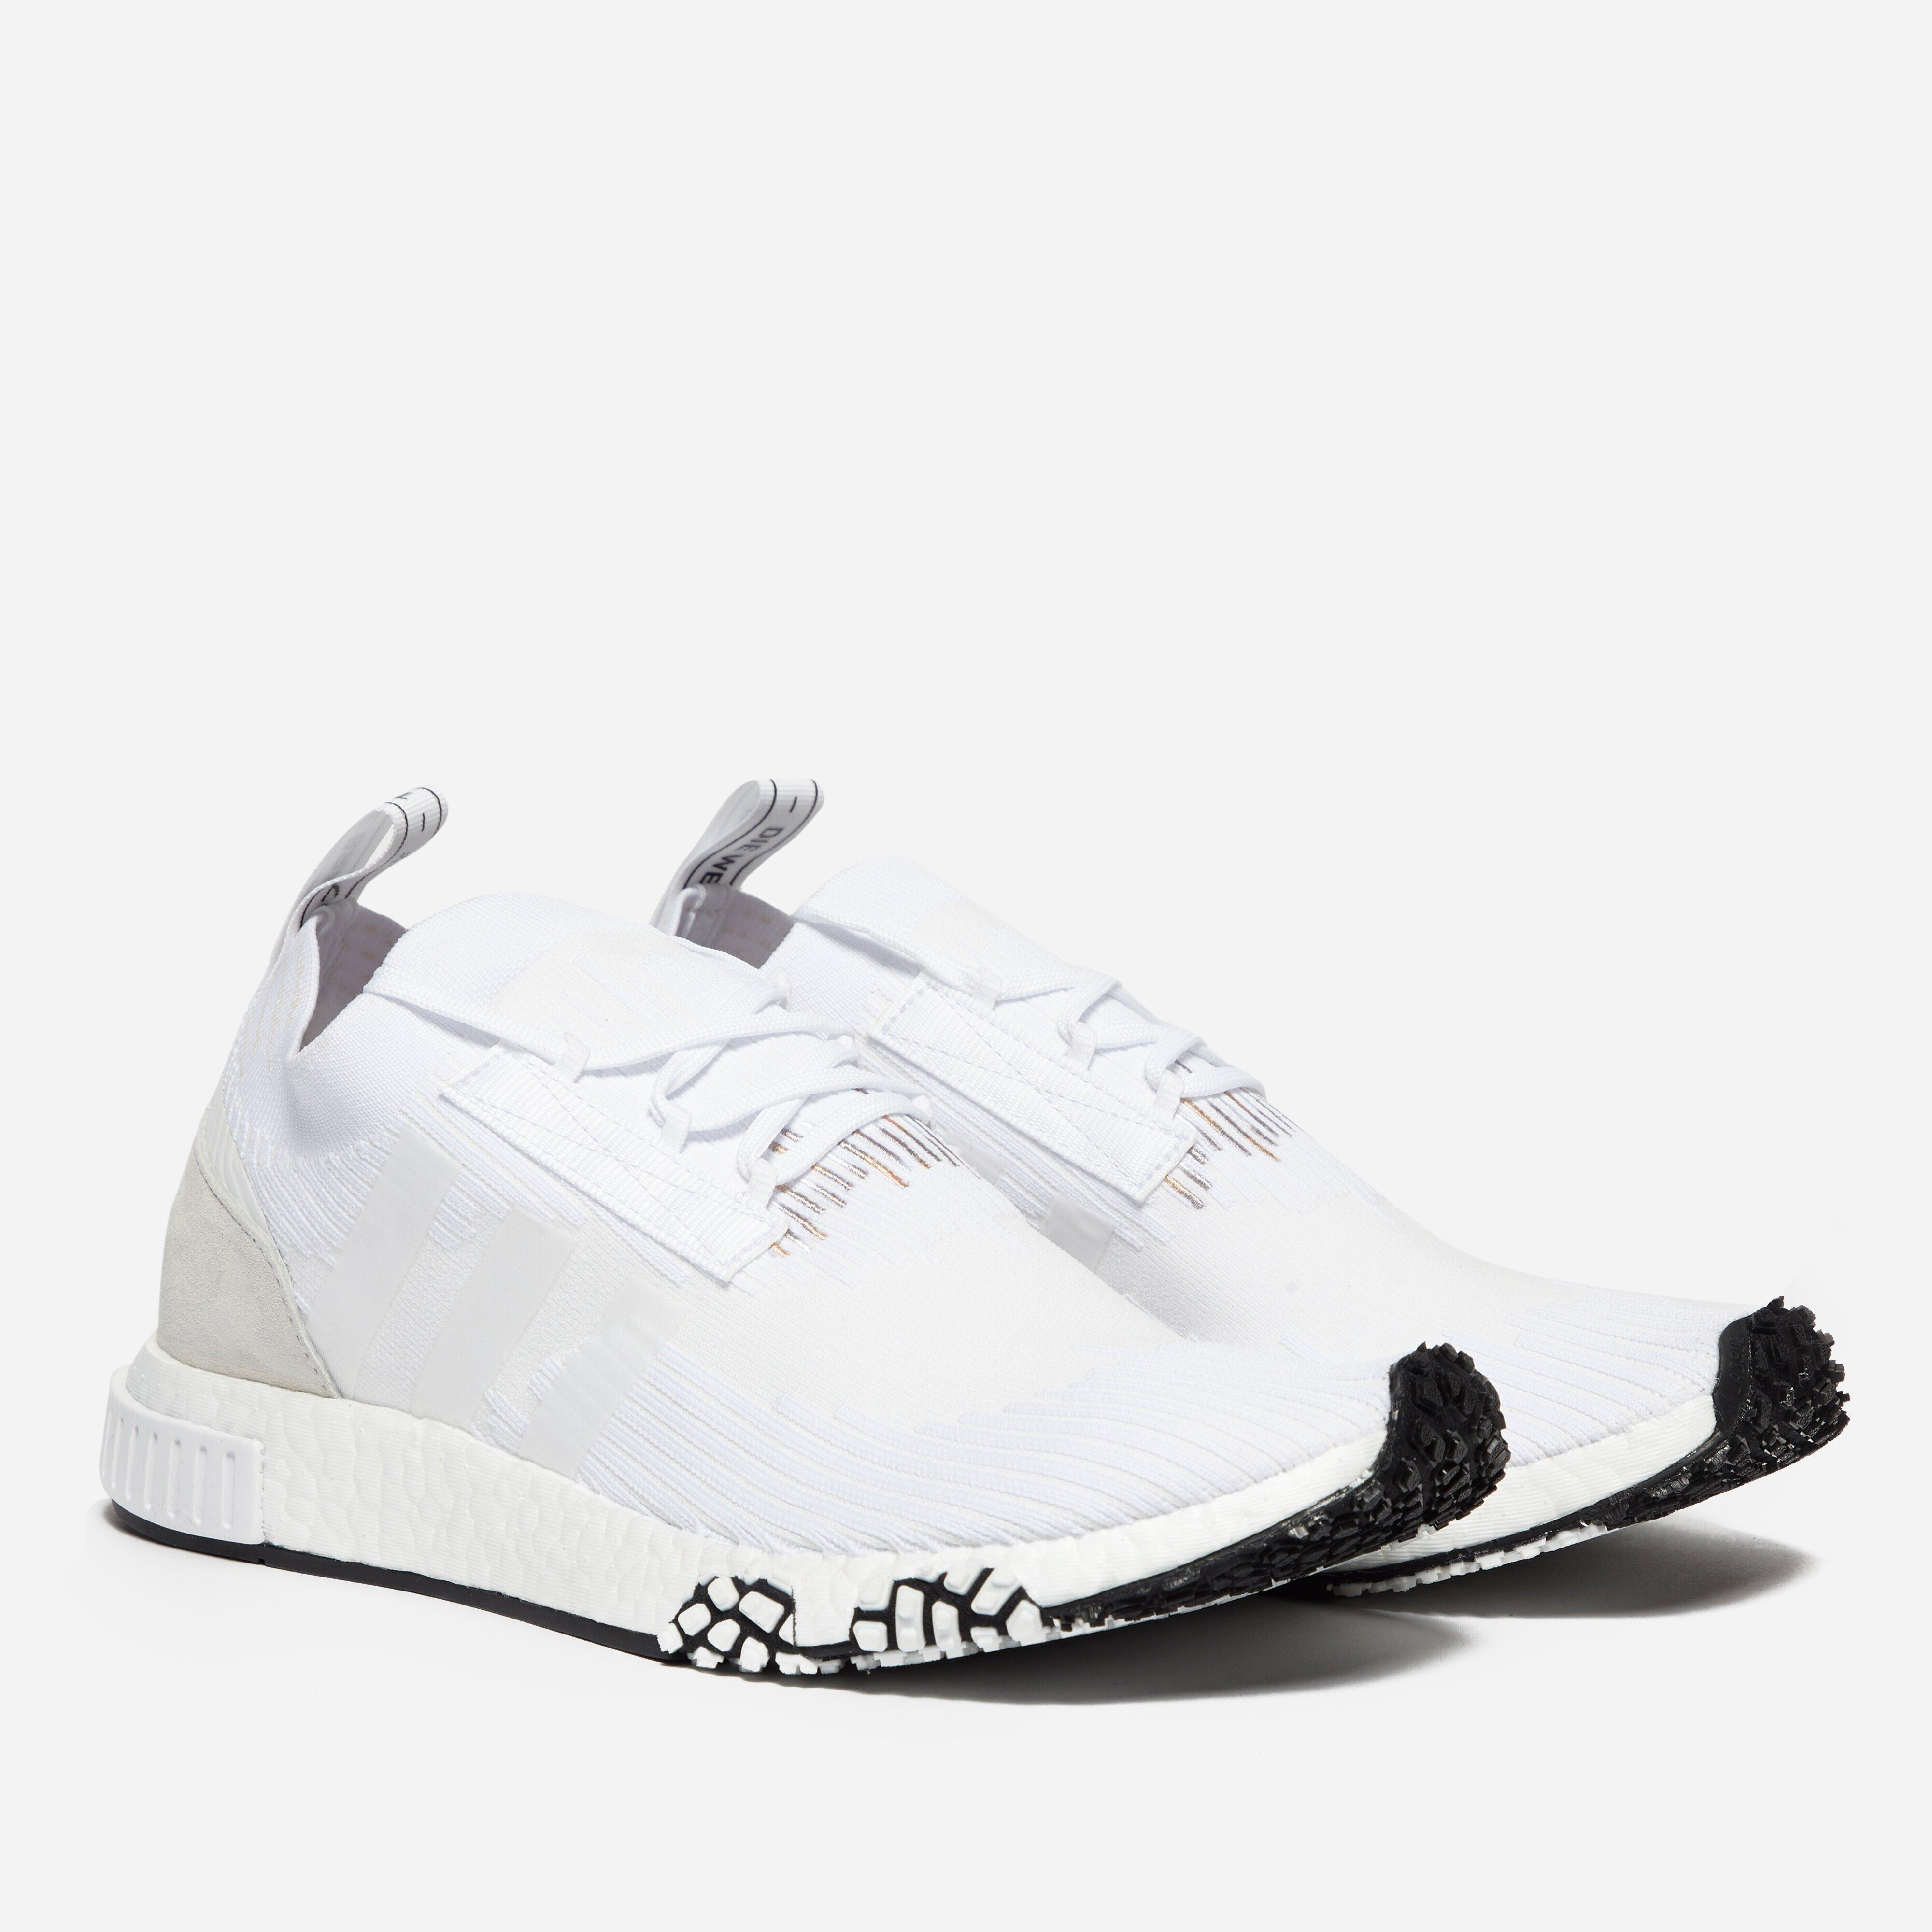 new arrival c6487 22d3e Adidas Originals Nmd Racer Pk in White for Men - Lyst